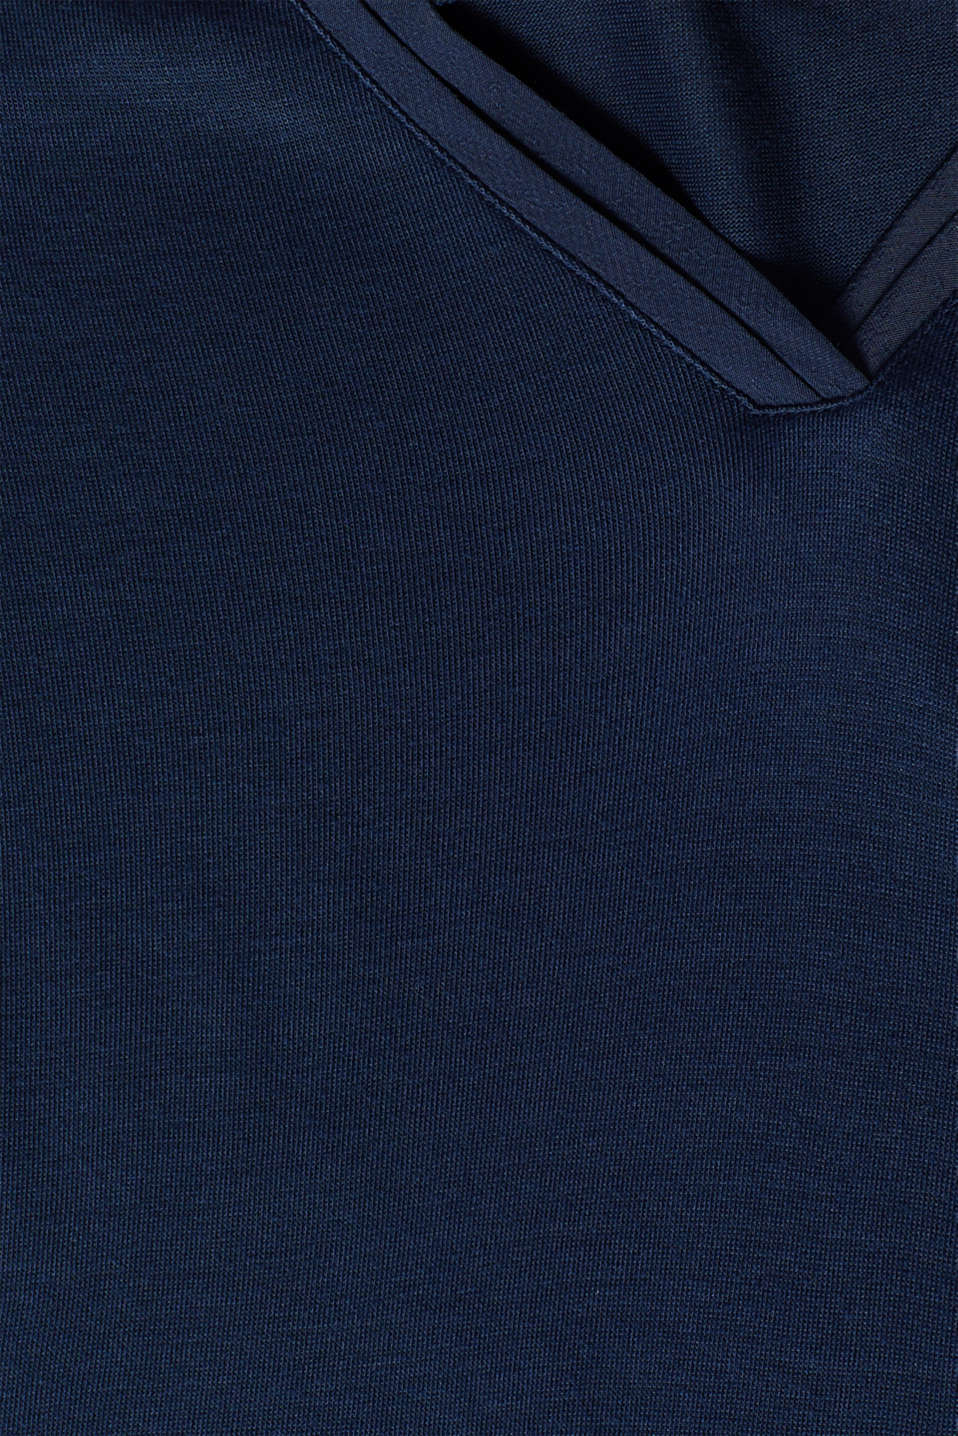 V-neck top in an exquisite material mix, NAVY, detail image number 4